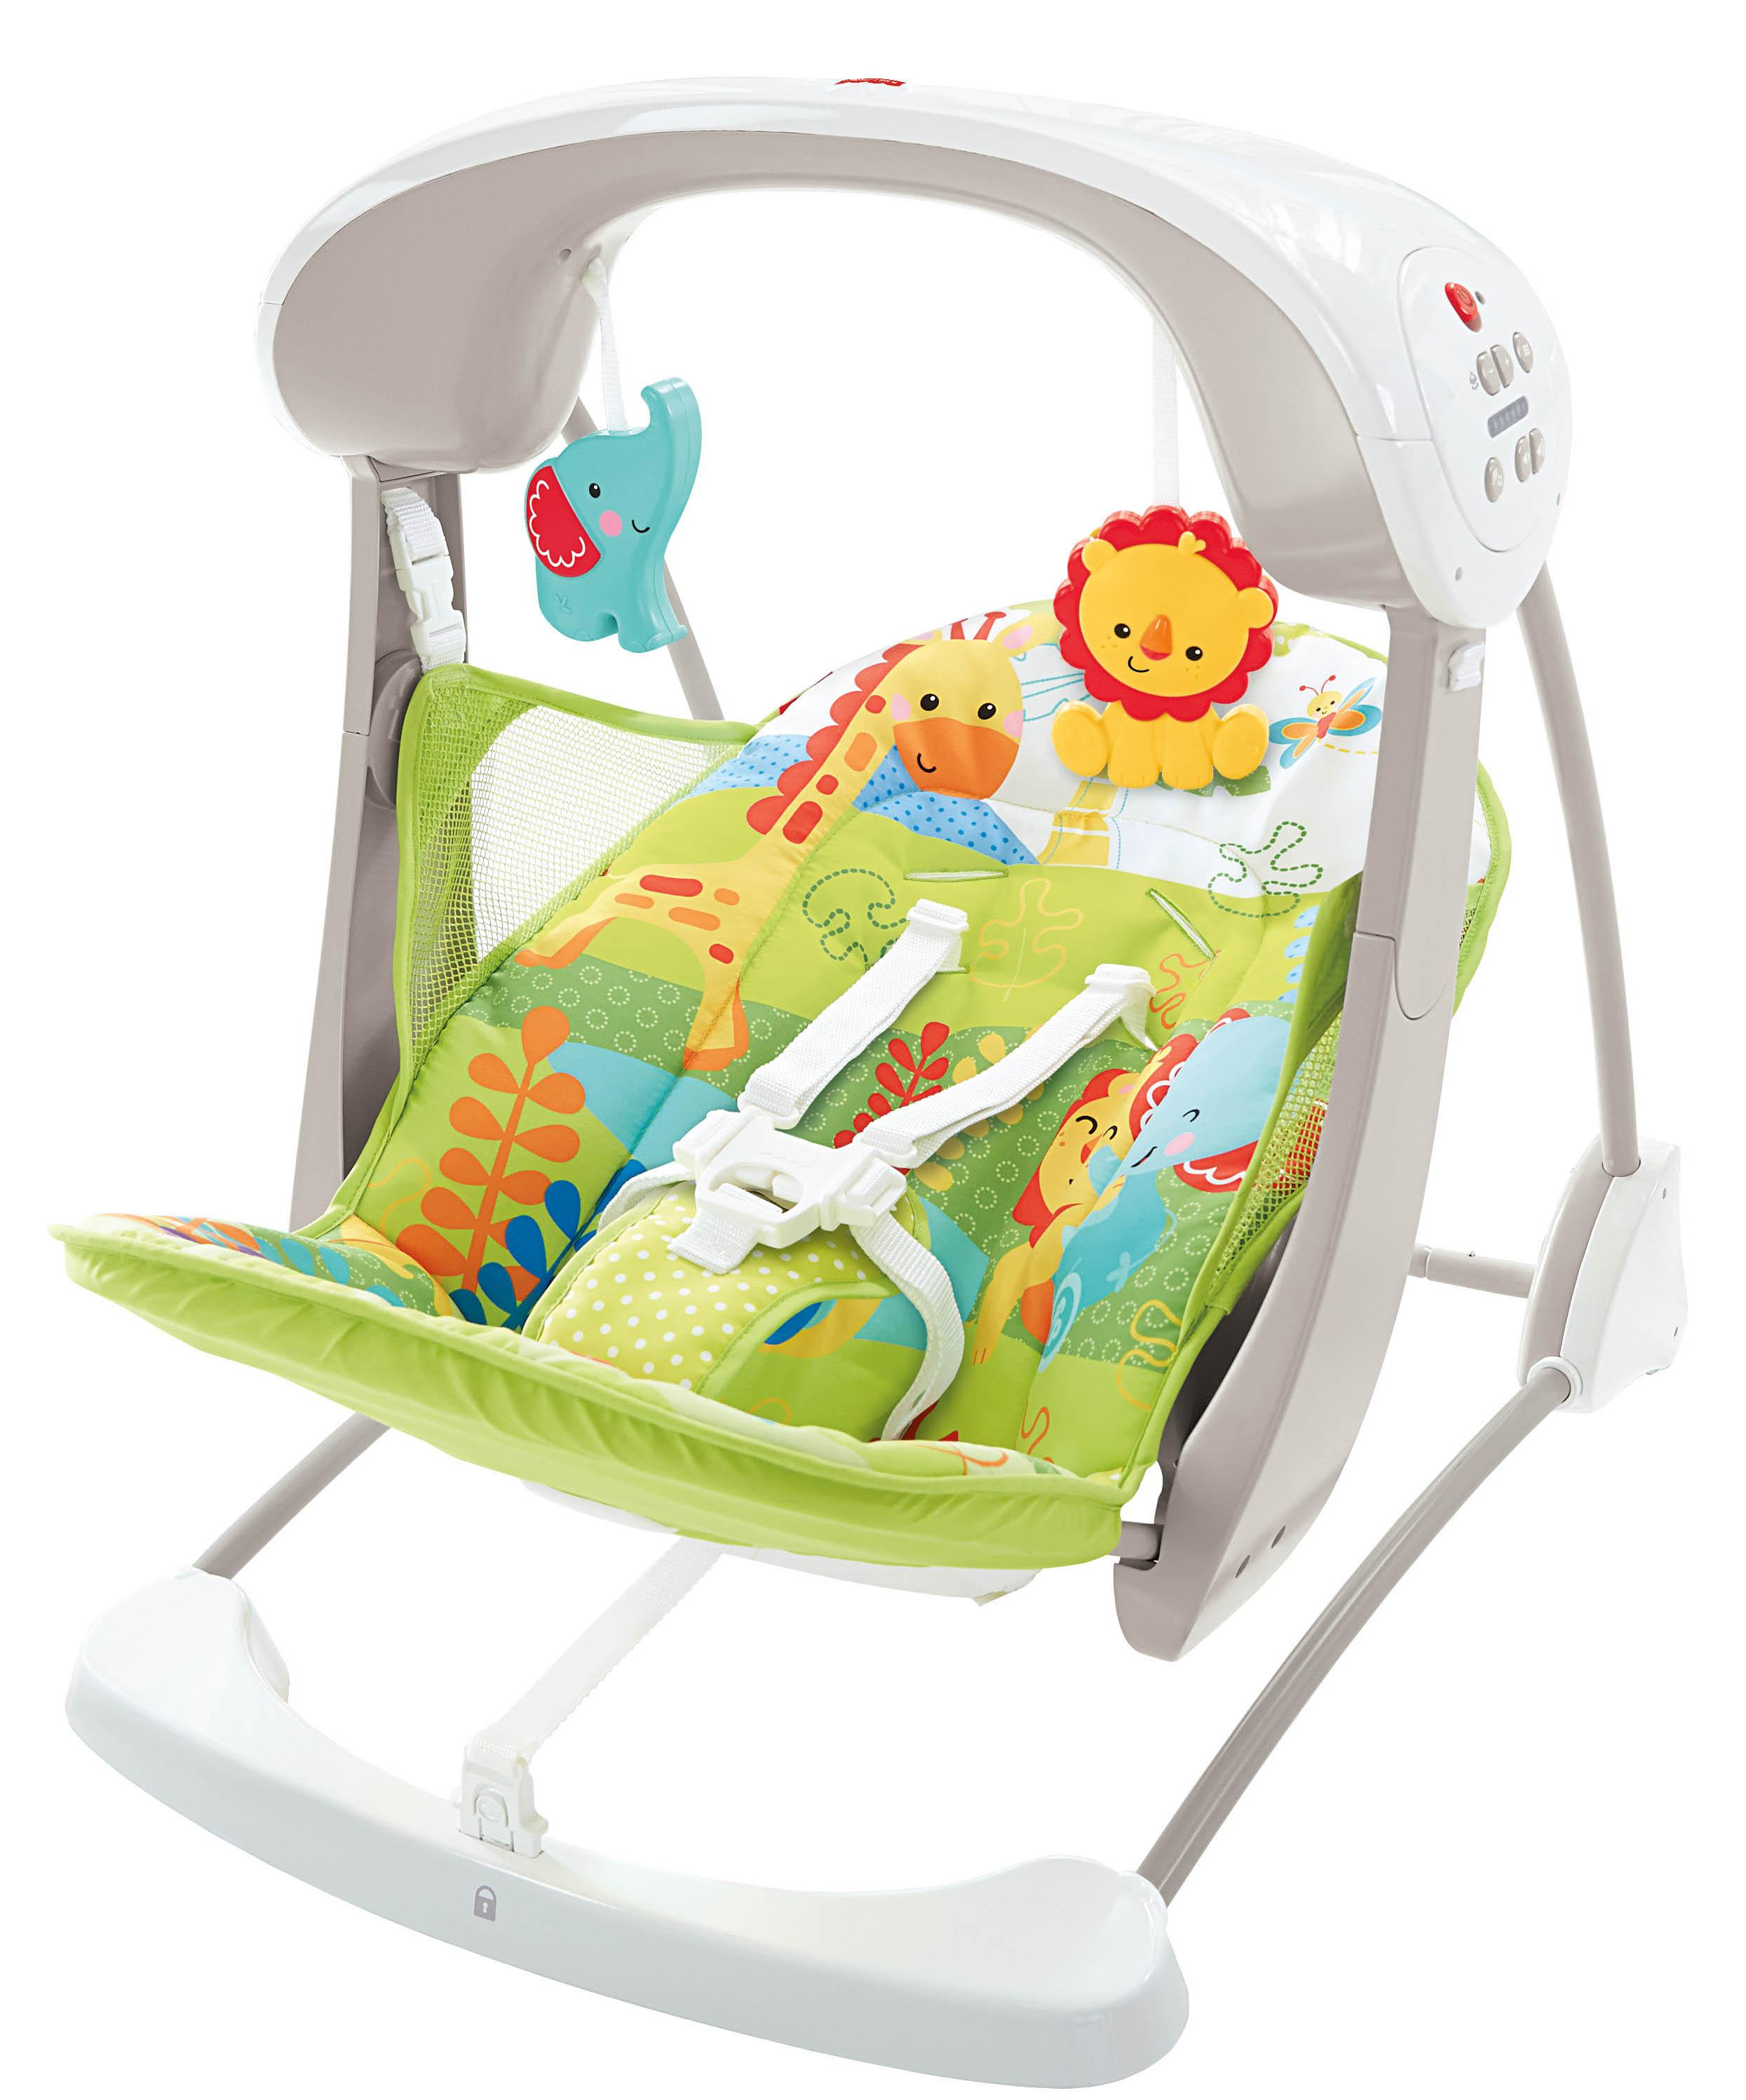 Fisher-Price Rainforest Take Along Swing and Seat Set, New-born Baby Swing Chair with Calming ...